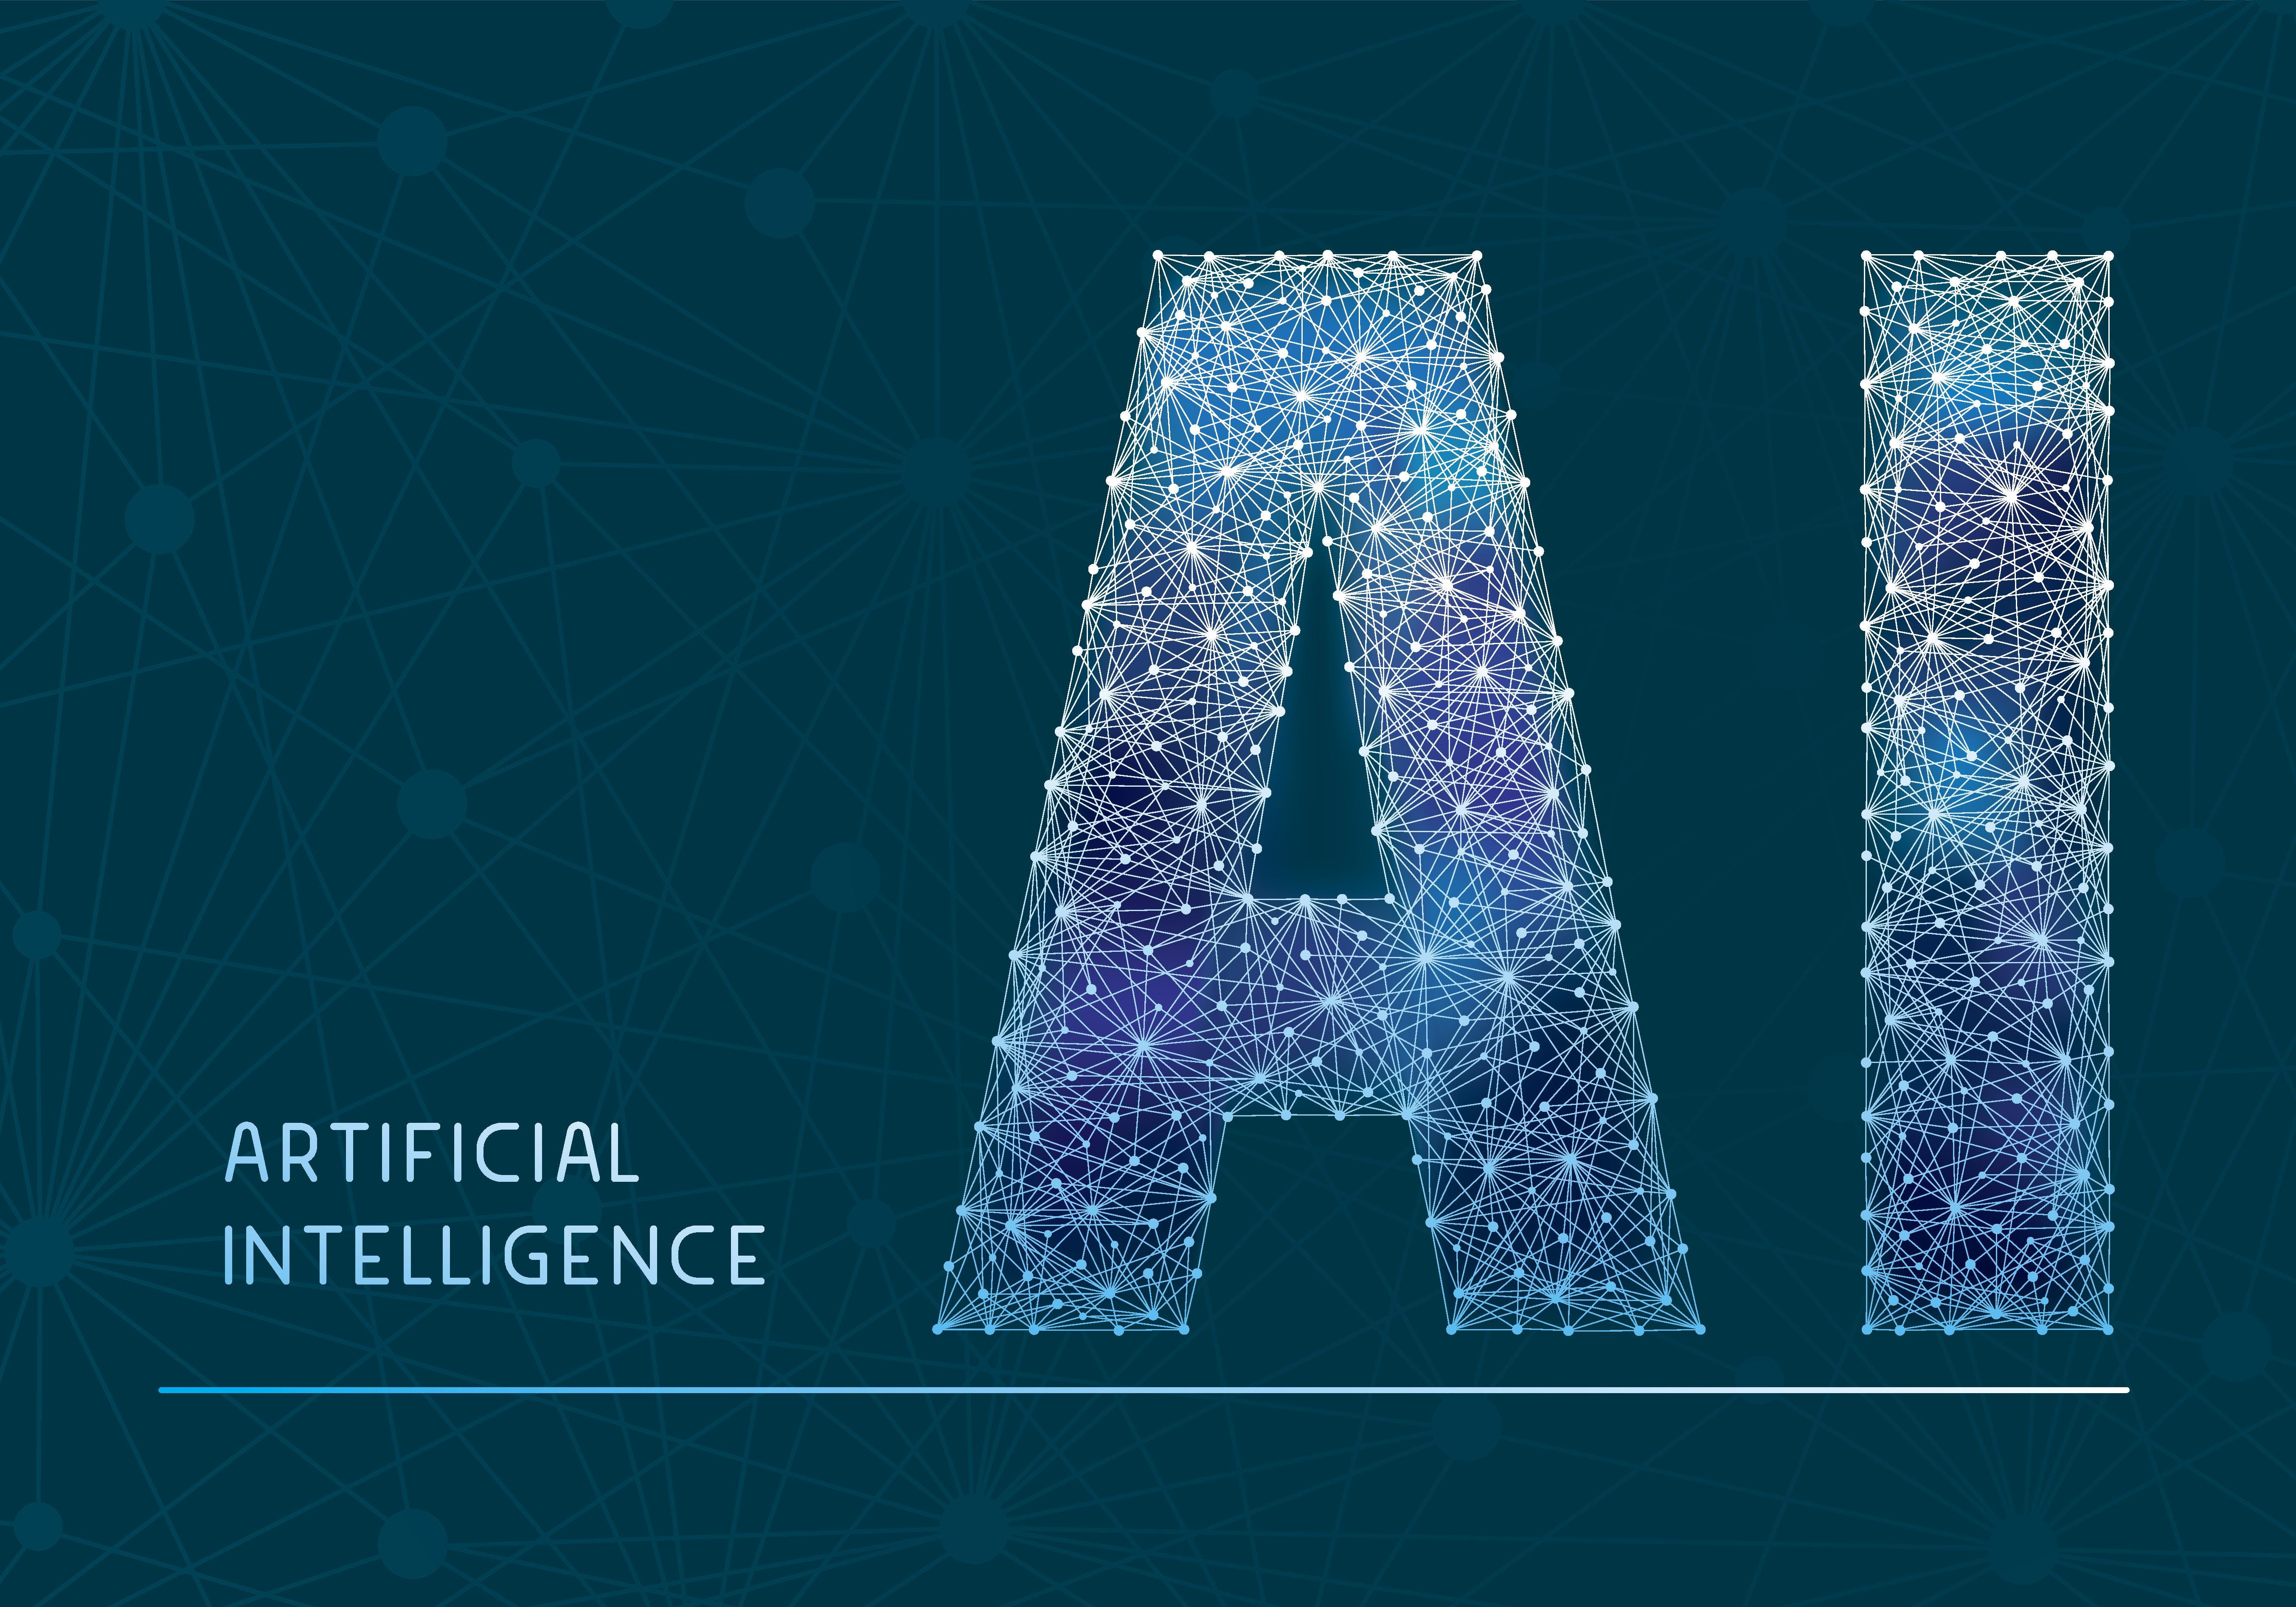 Learn more about AI 4.0